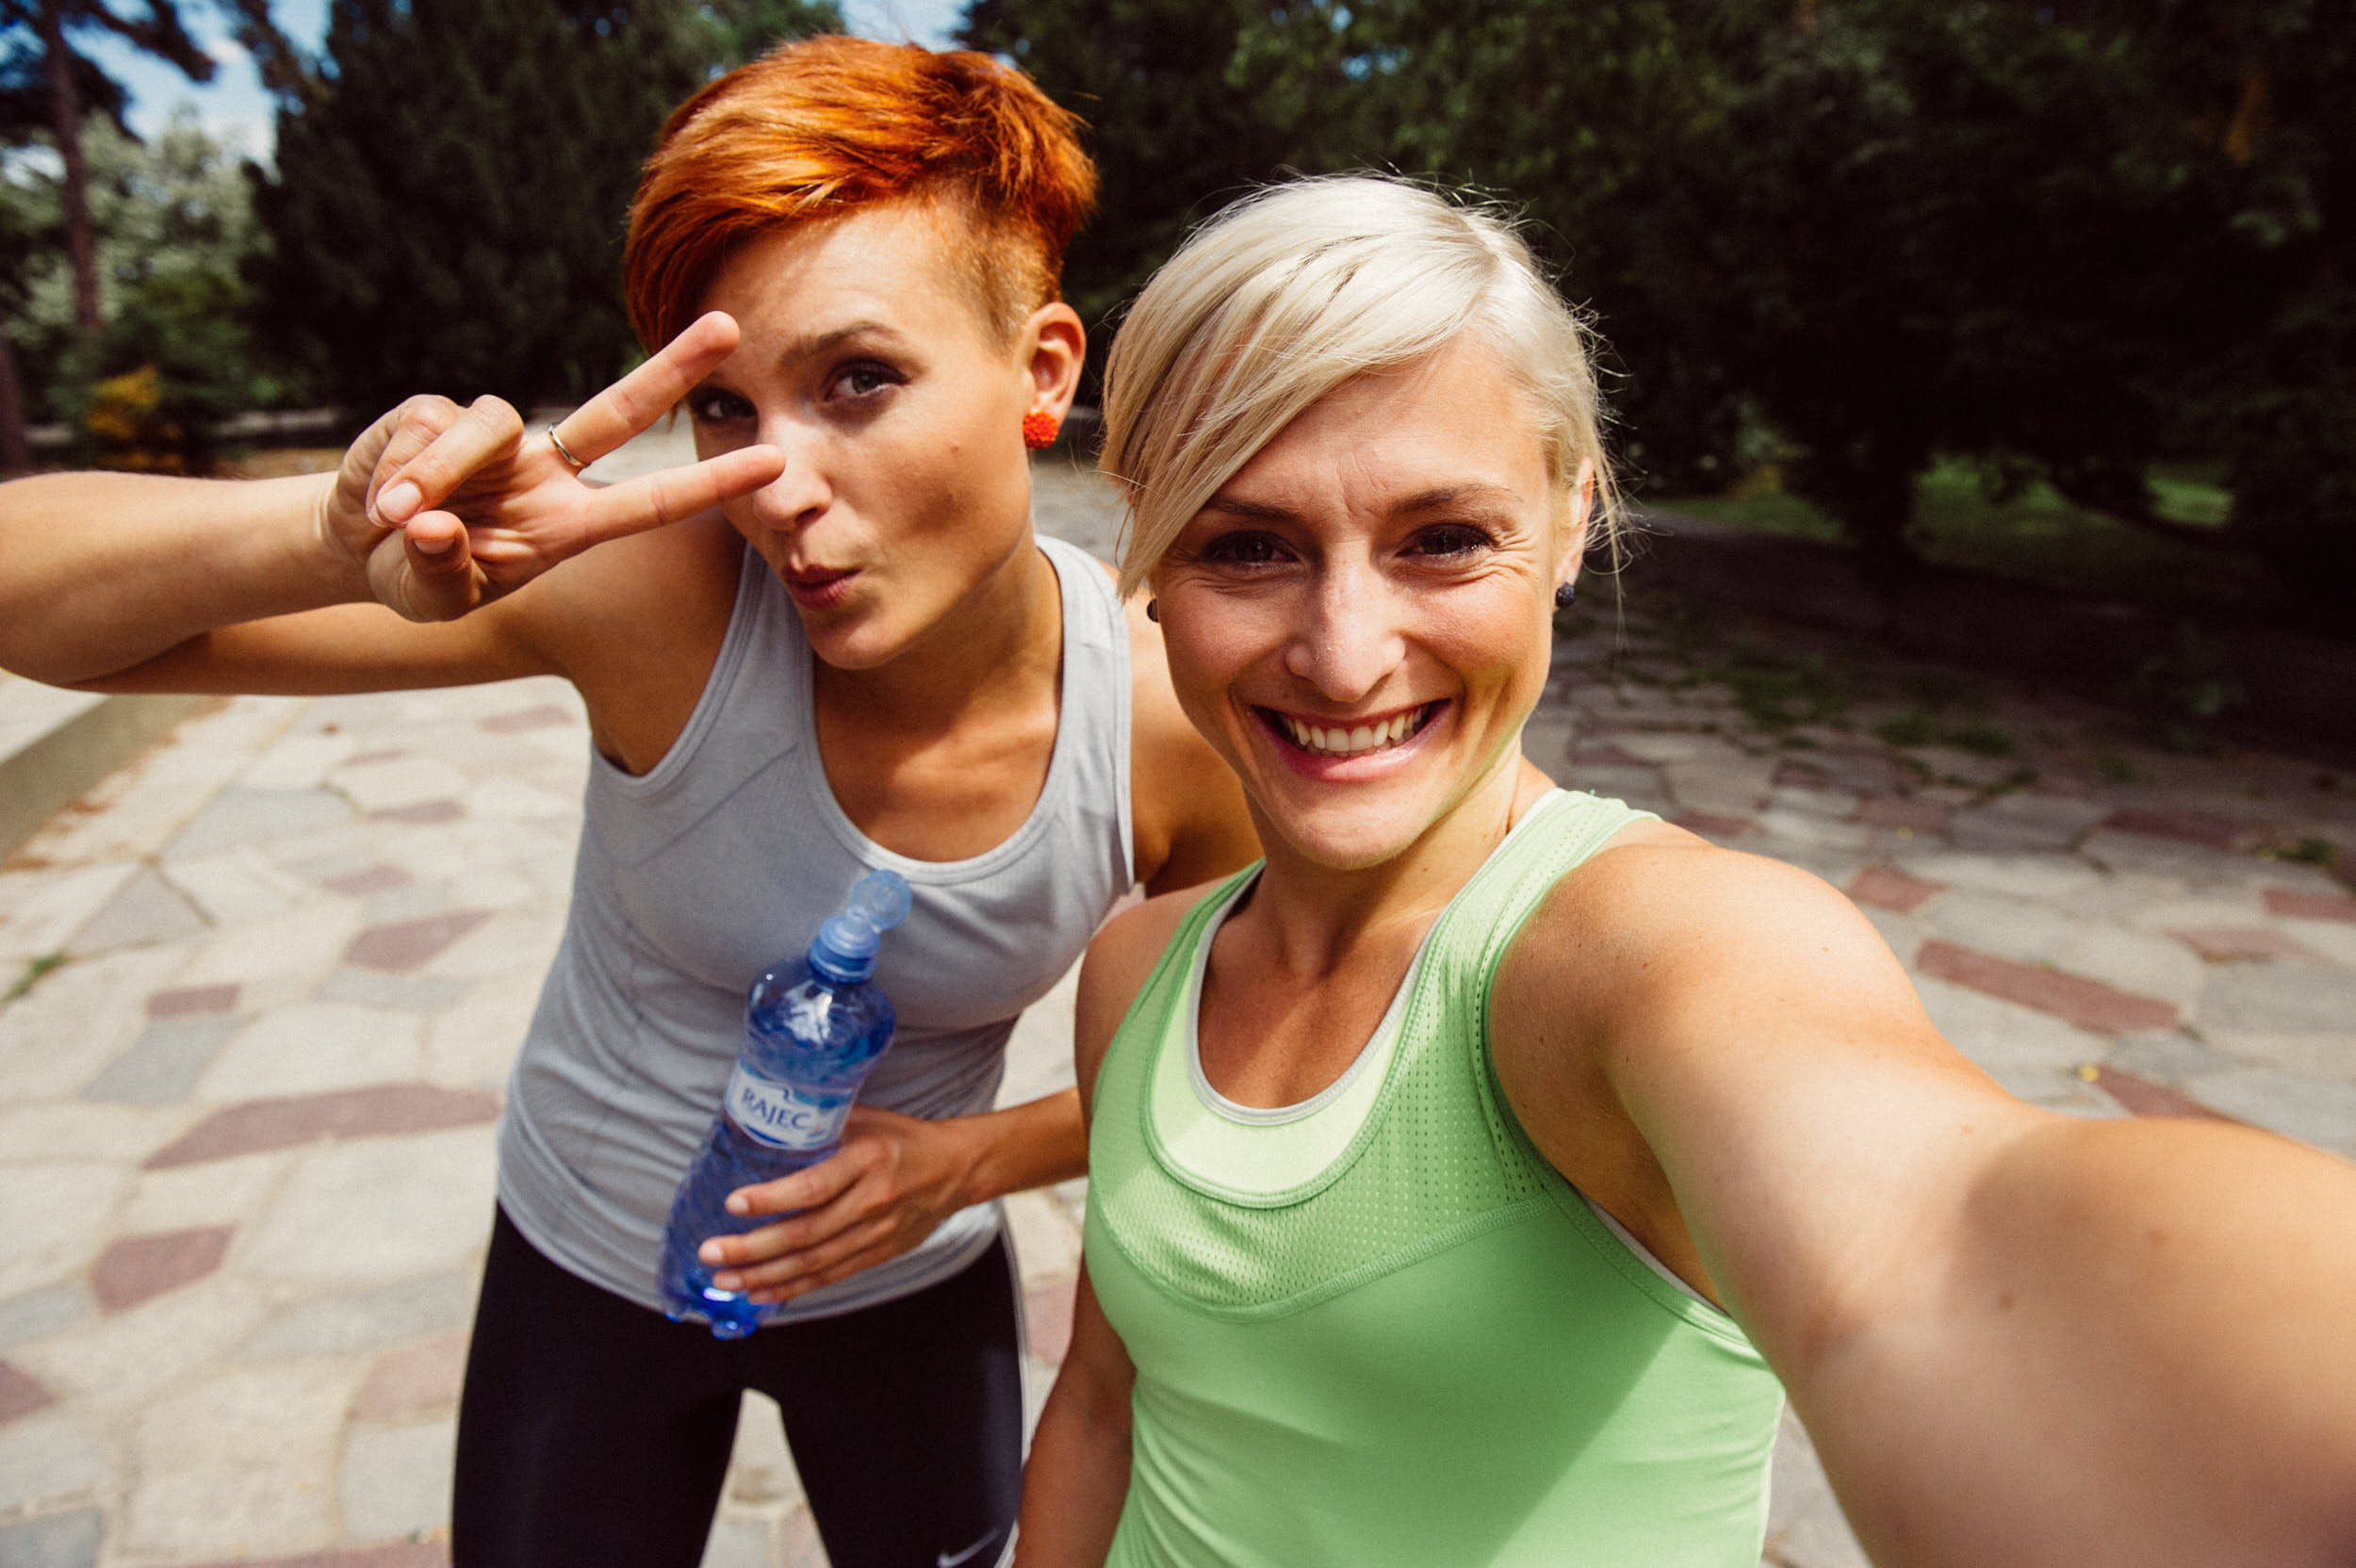 Active lifestyle photography: two female runners in fitness apparel taking a selfie after a workout.